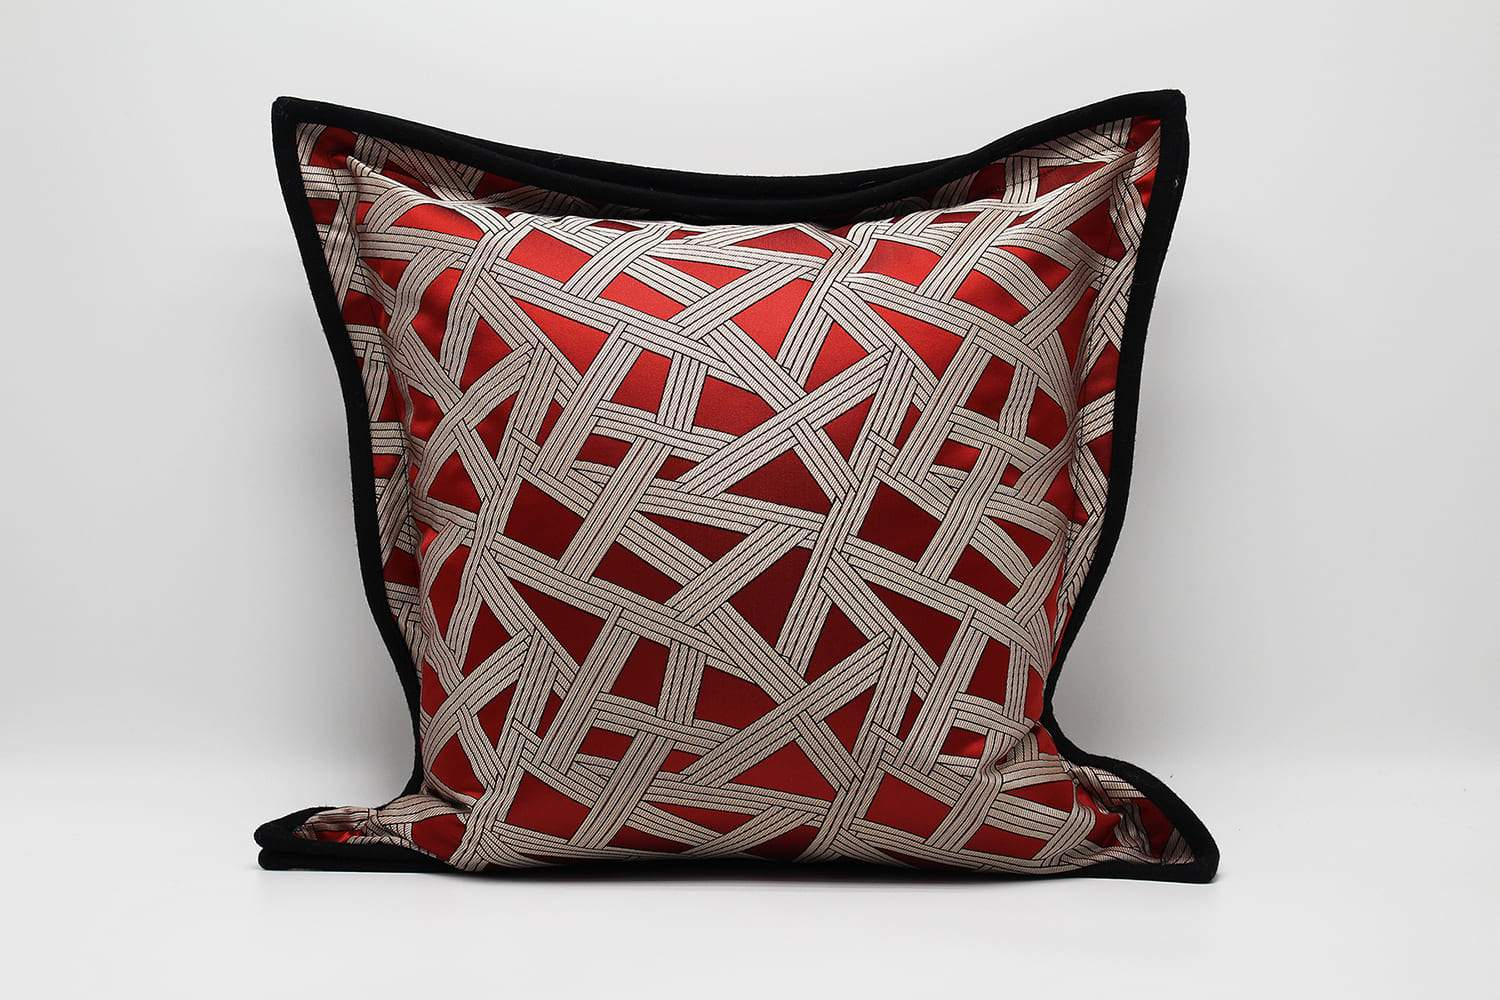 CUDDLE BEAUTIFUL RED PILLOWS & CUSHION- ANGIE HOMES ANGIE HOMES